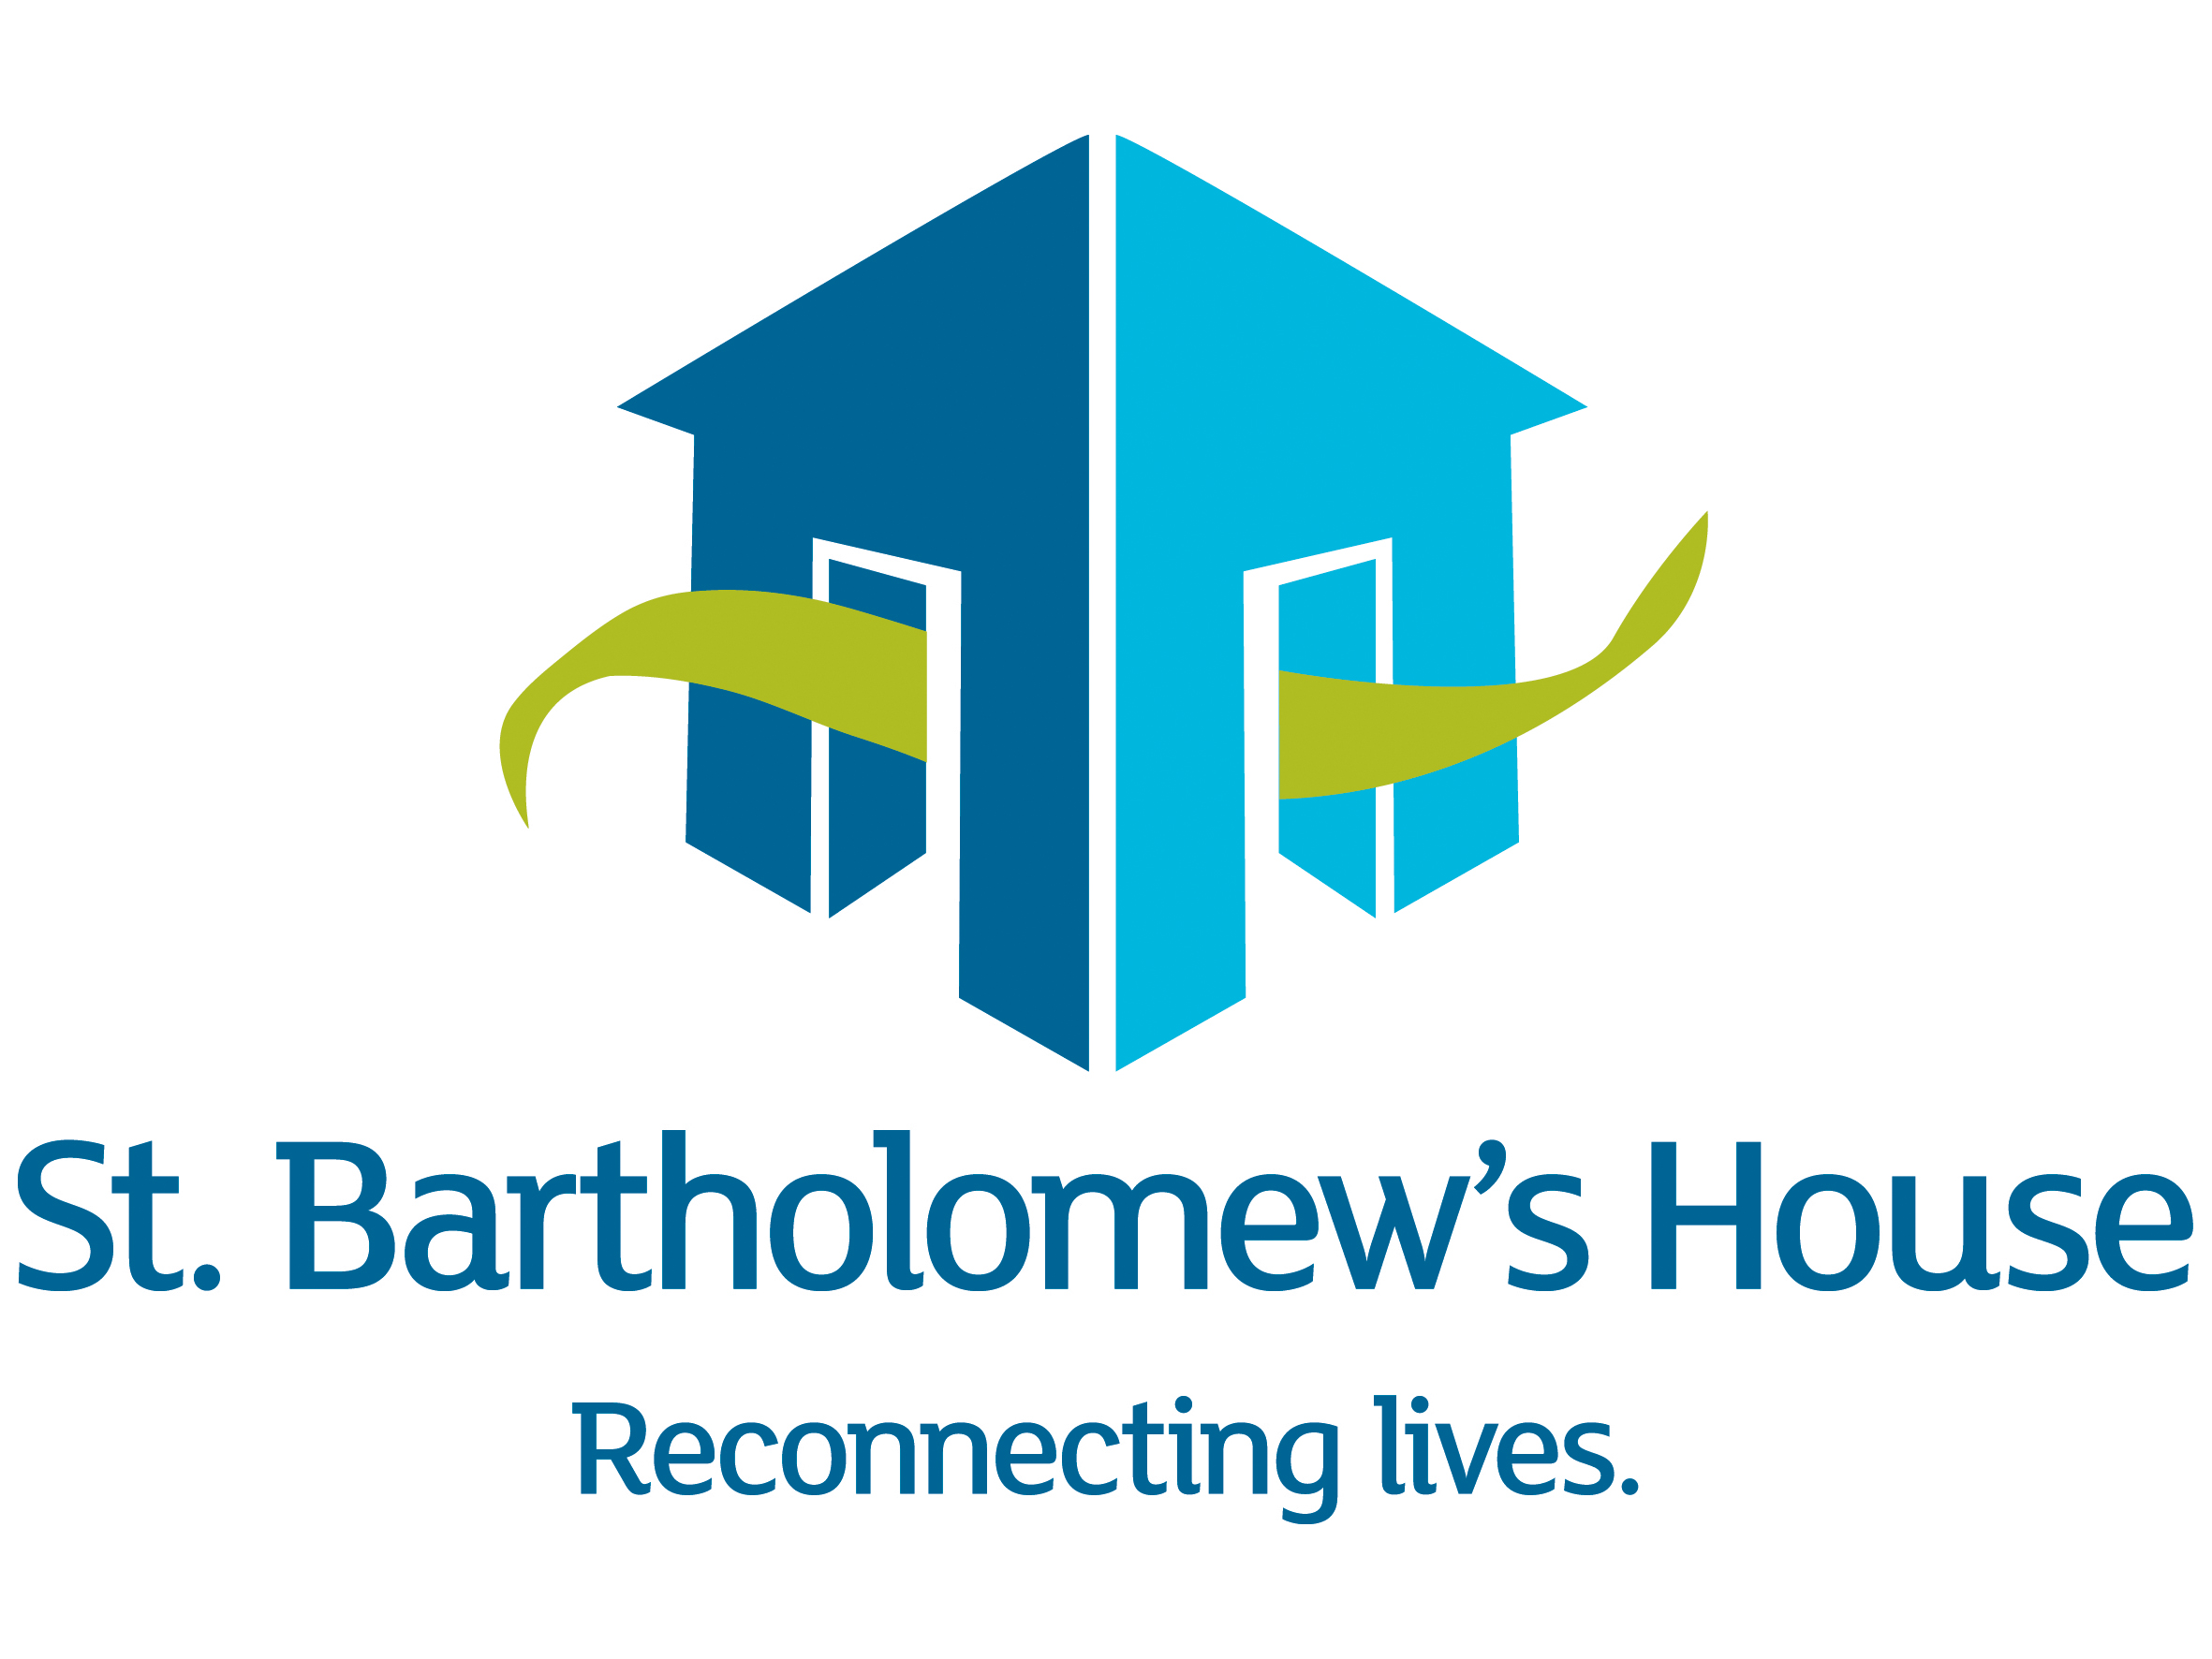 Acton applecross acton applecross donates a percentage of the commission from each property we sell to the st bartholomews house in support of the amazing and important reheart Choice Image